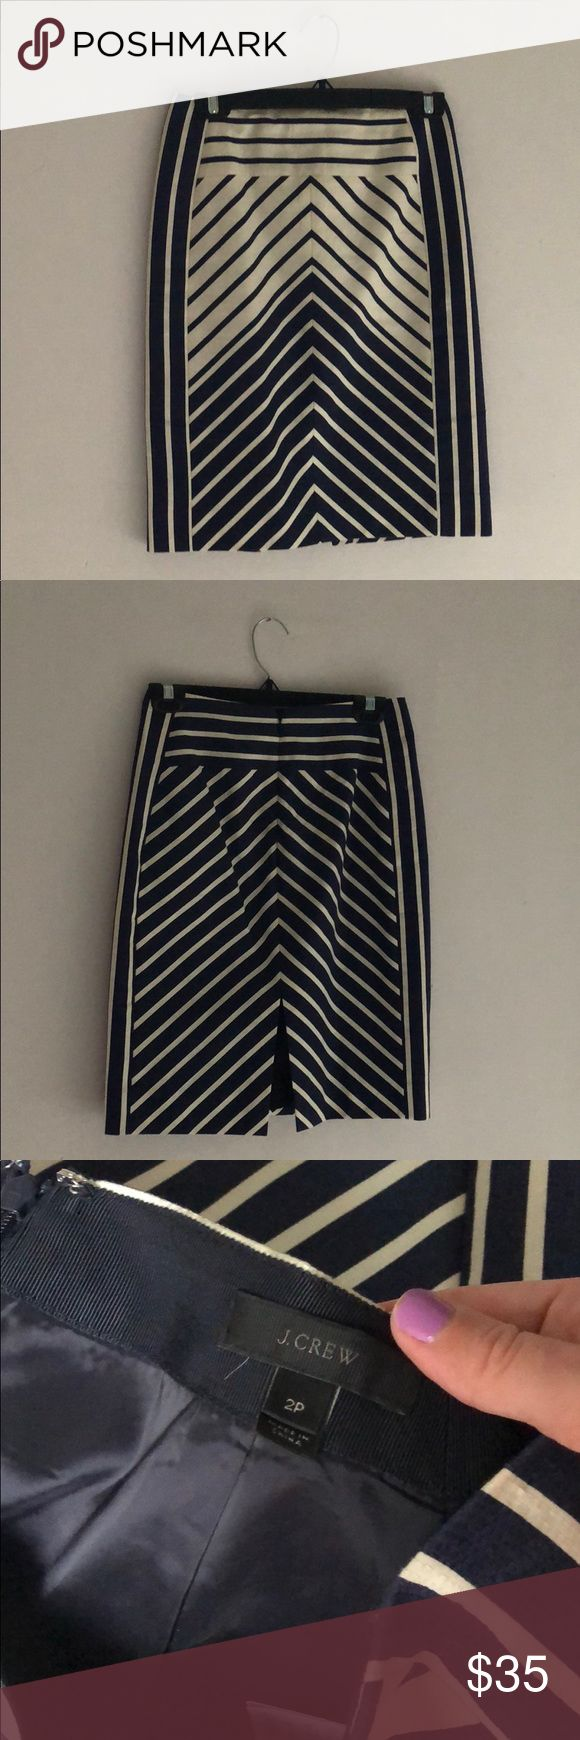 """ J Crew. navy chevron pencil skirt ✏️ Worn once and in perfect condition. Size 2p This sleek, slightly longer silhouette with a modern higher waist. It's made from a specially stitched cotton fabric, so it has a touch of texture, and is finished with chevron stripes that were carefully engineered for an extra-flattering effect. Cotton. Back zip. Lined. Dry clean. Import. Online only. Item C5408. Sits above waist. 21 1/4"""" long. Falls above knee J. Crew Skirts Pencil"""